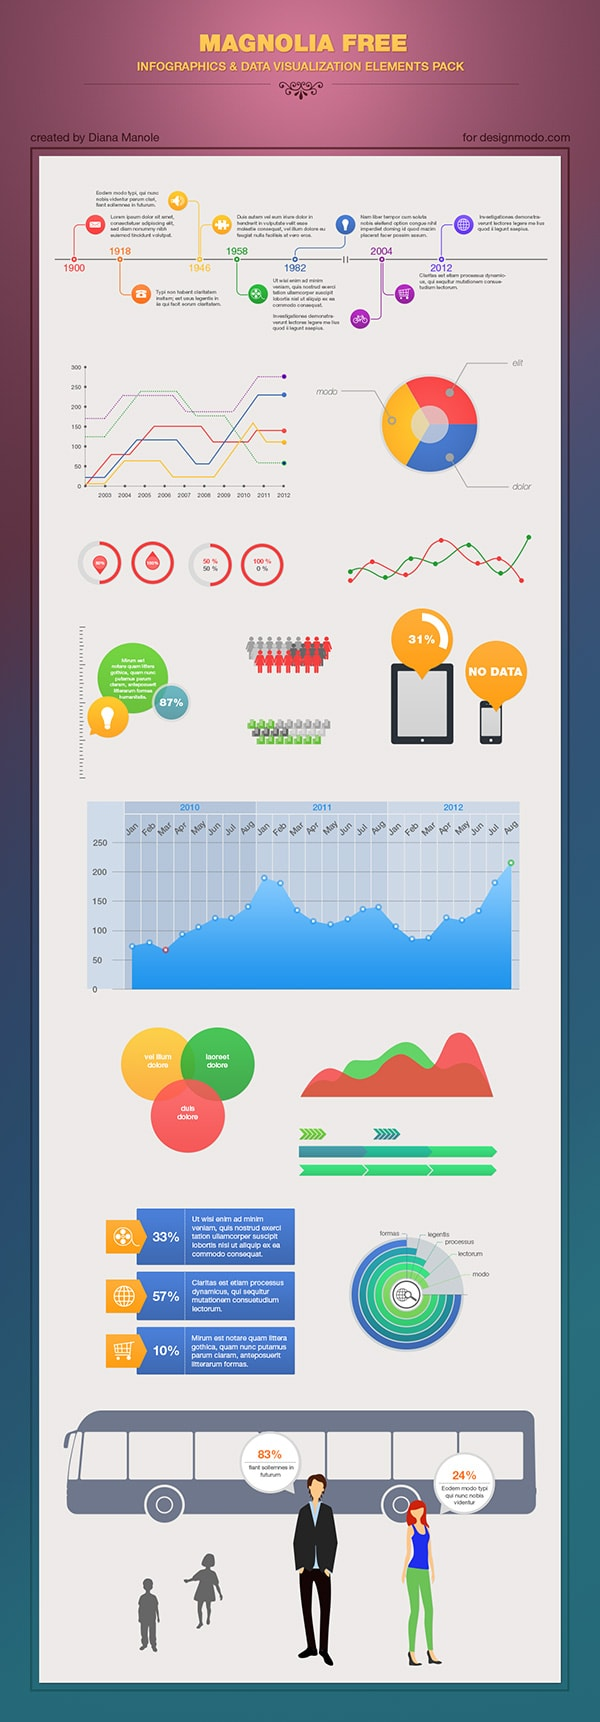 magnolia free - infographic psd template